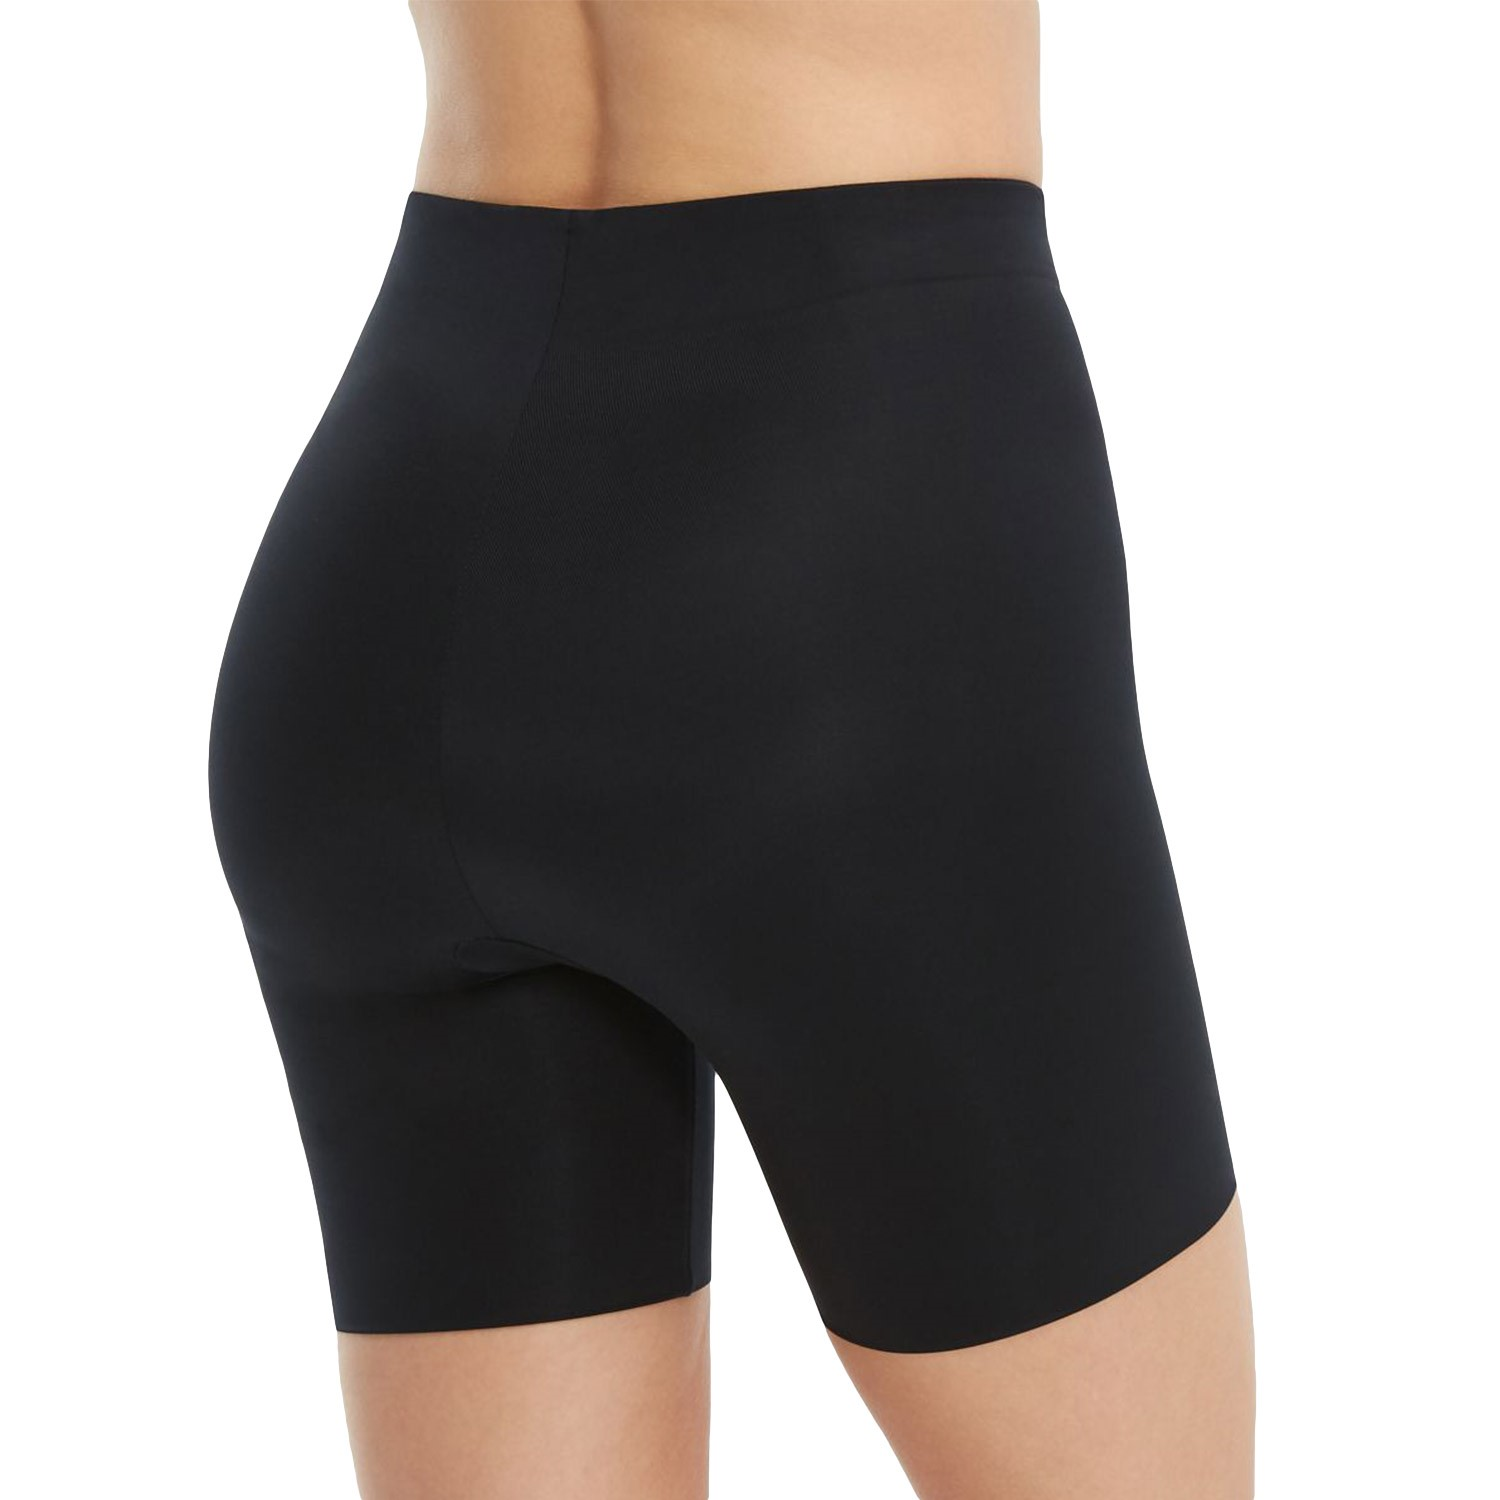 b35ecad3ab195 Spanx Suit Your Fancy Booty Booster Mid-Thigh - Panties/Girdles ...